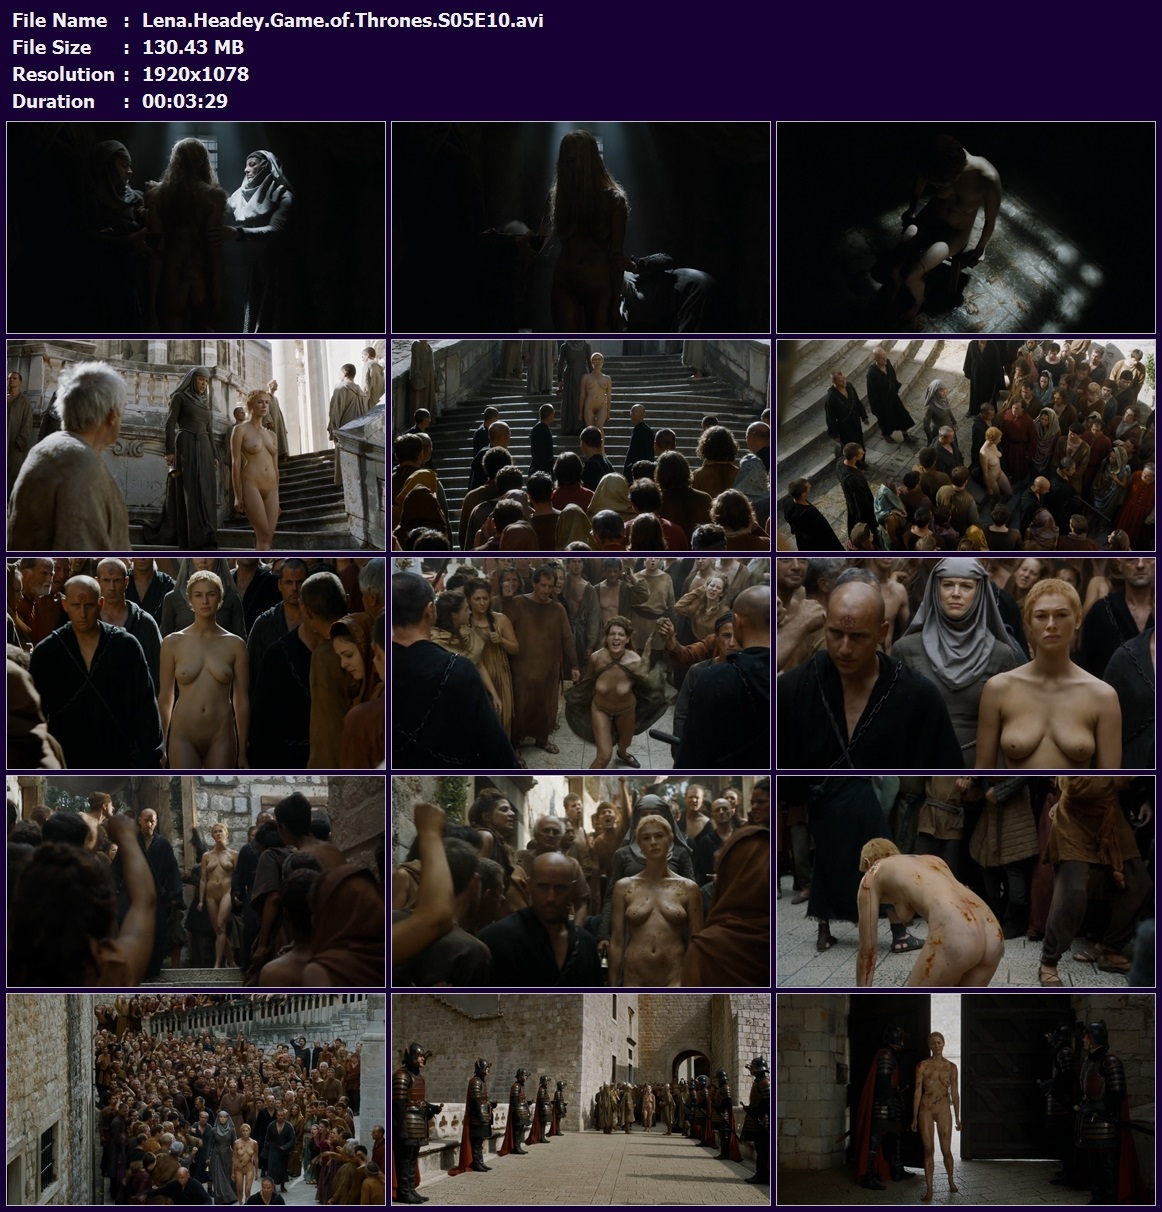 Lena.Headey.Game.of.Thrones.S05E10.avi